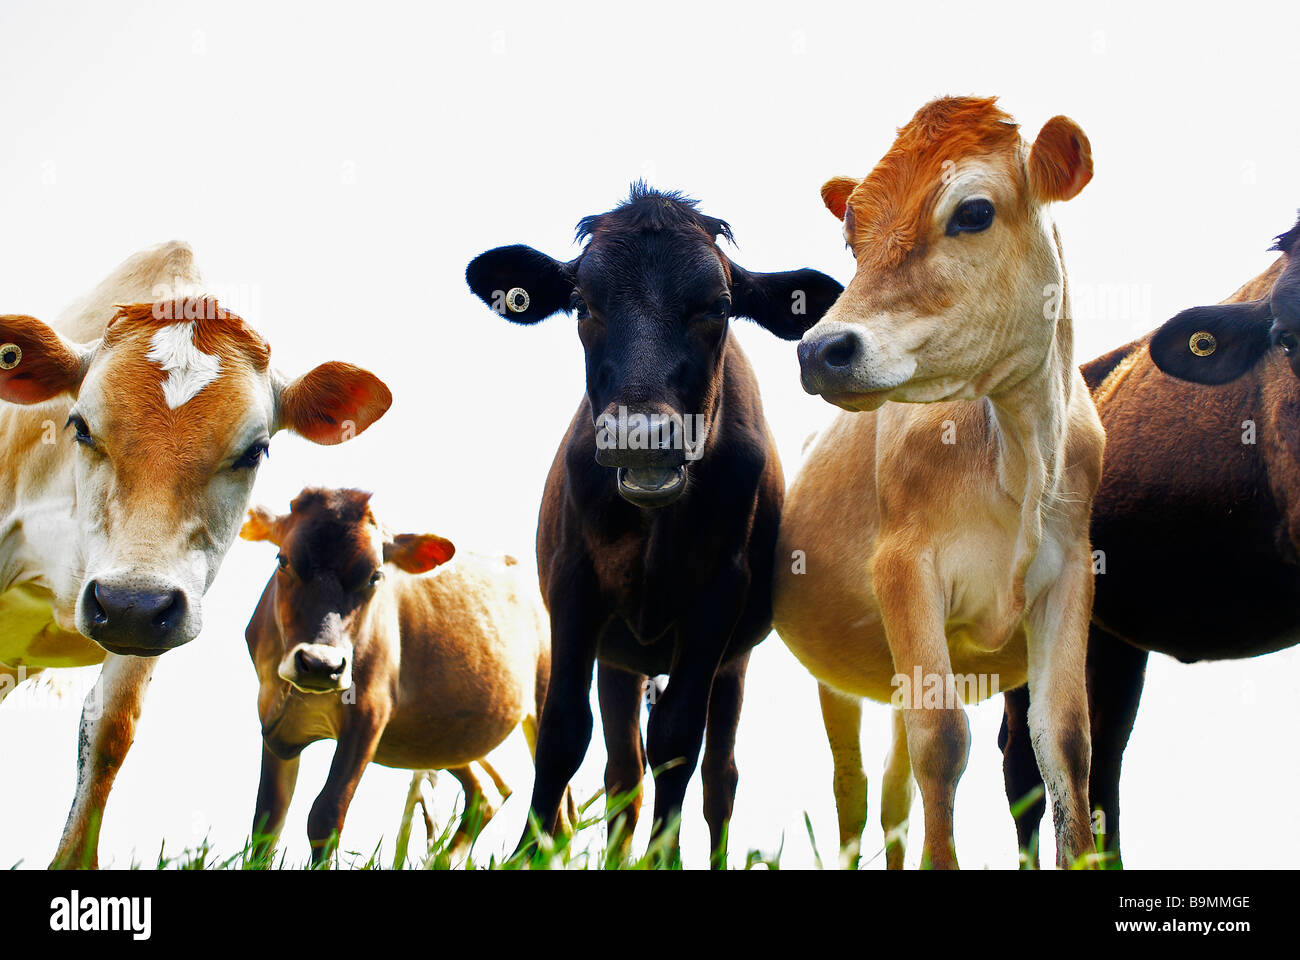 Dairy cows - Stock Image